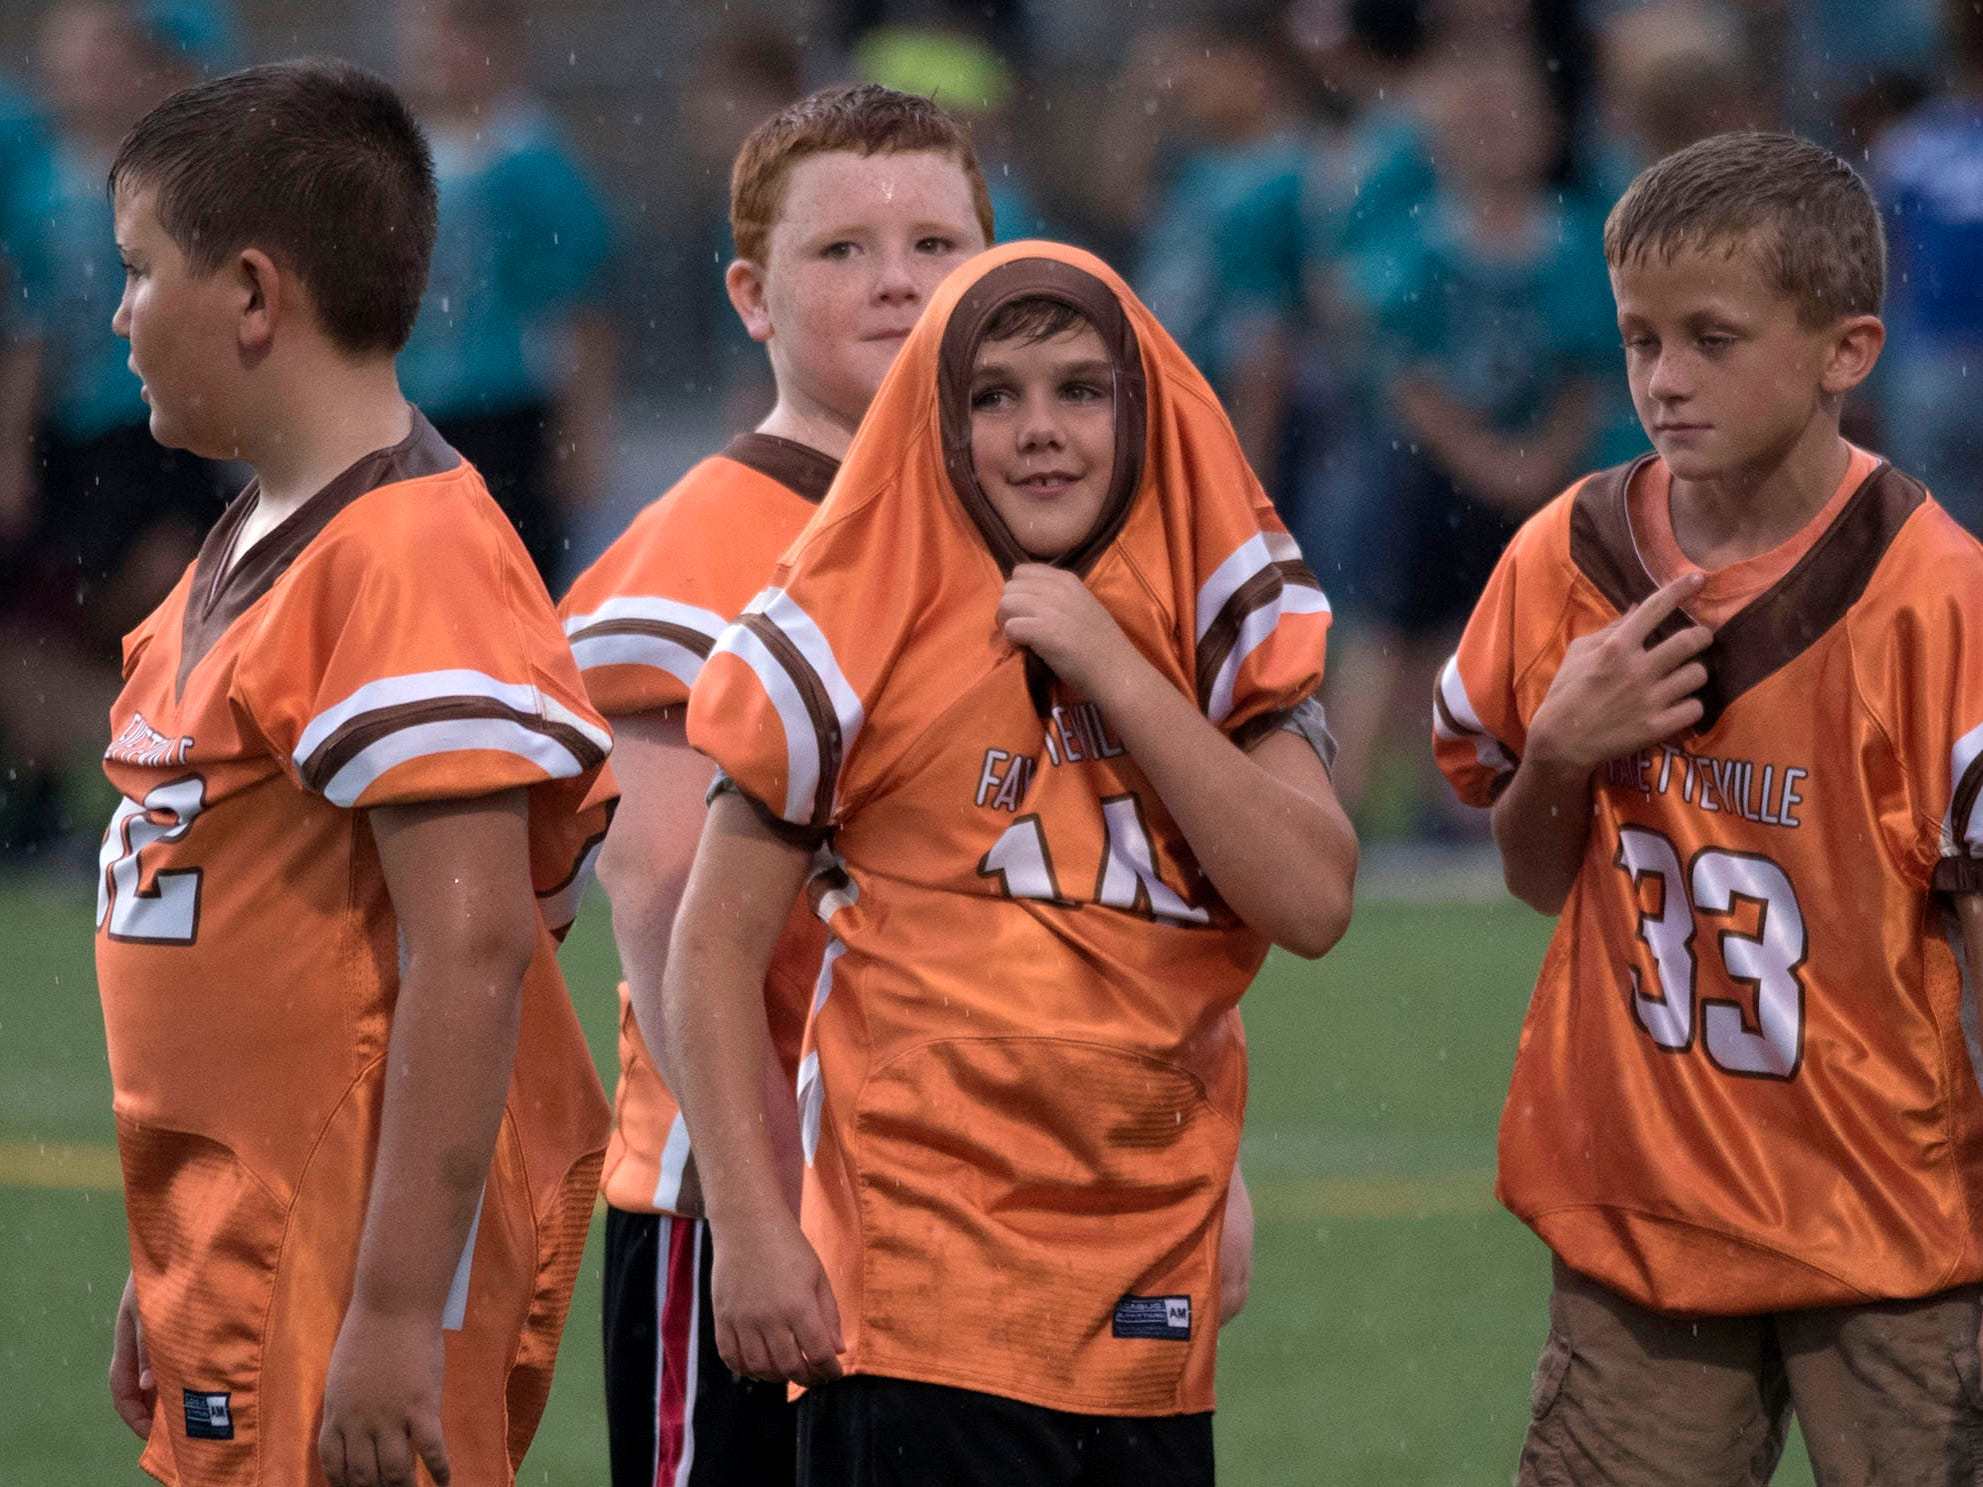 Chambersburg-area youth league football players weather the storm to watch the Trojans. Chambersburg defeated Red Lion 28-19 in PIAA football on Friday, Sept. 7, 2018.